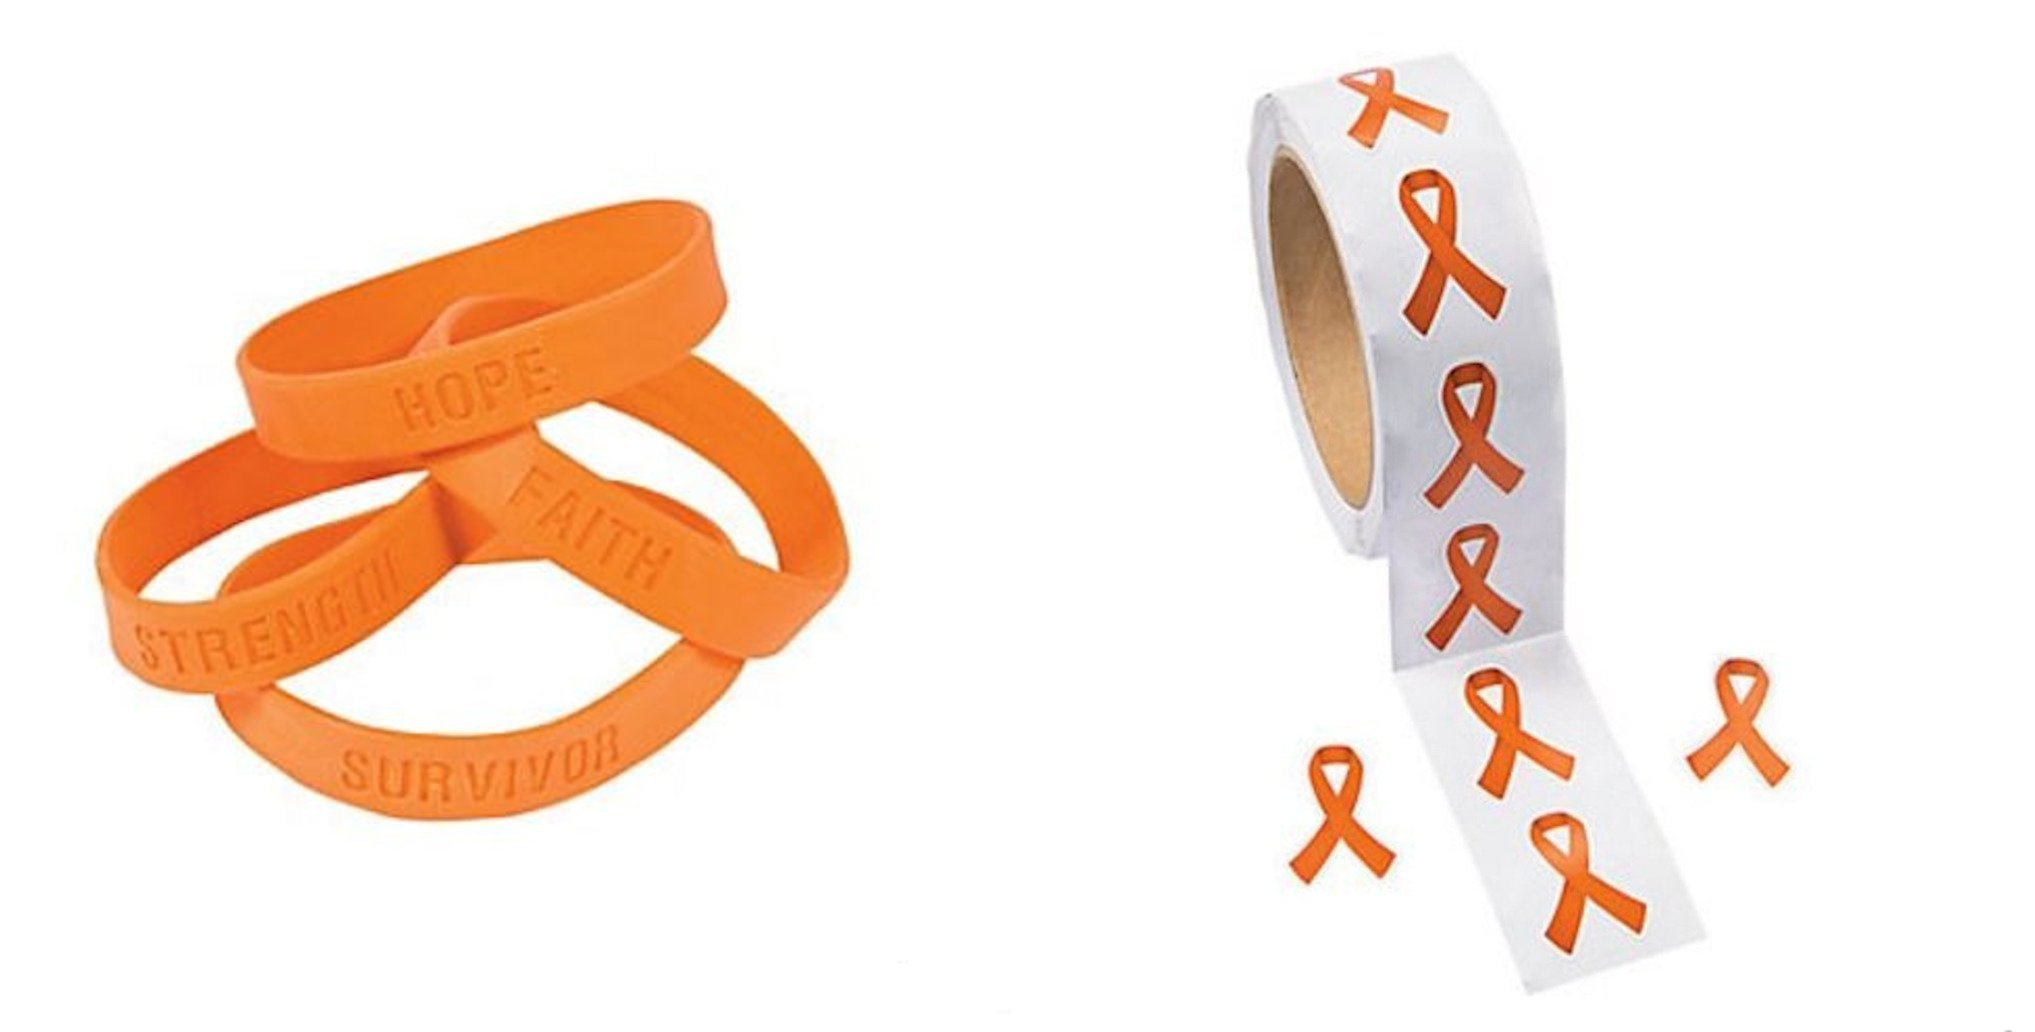 bracelet shop necklaces pk campaign c a party index ribbon leukemia products orange open awareness canada supplies